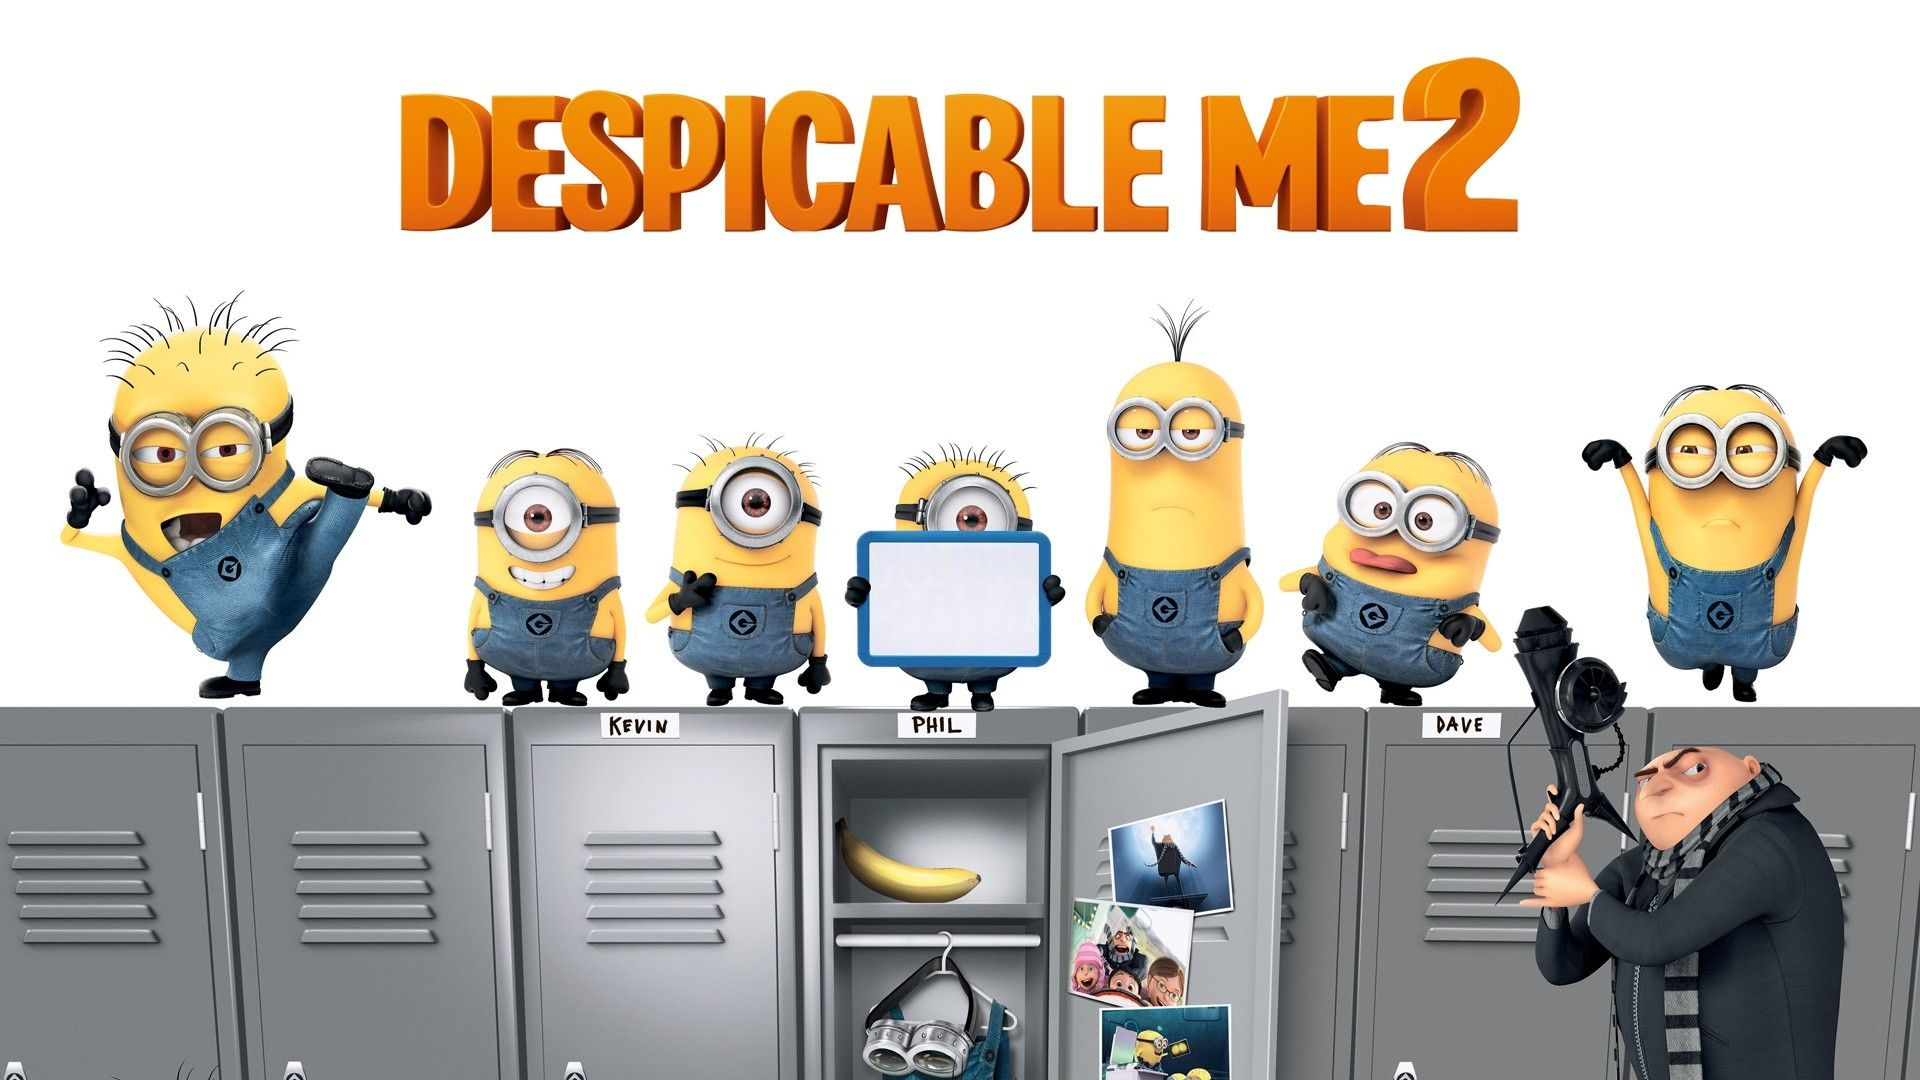 Despicable-Me-Minions-For-Android-more-info-wallpaper-wpc5804091